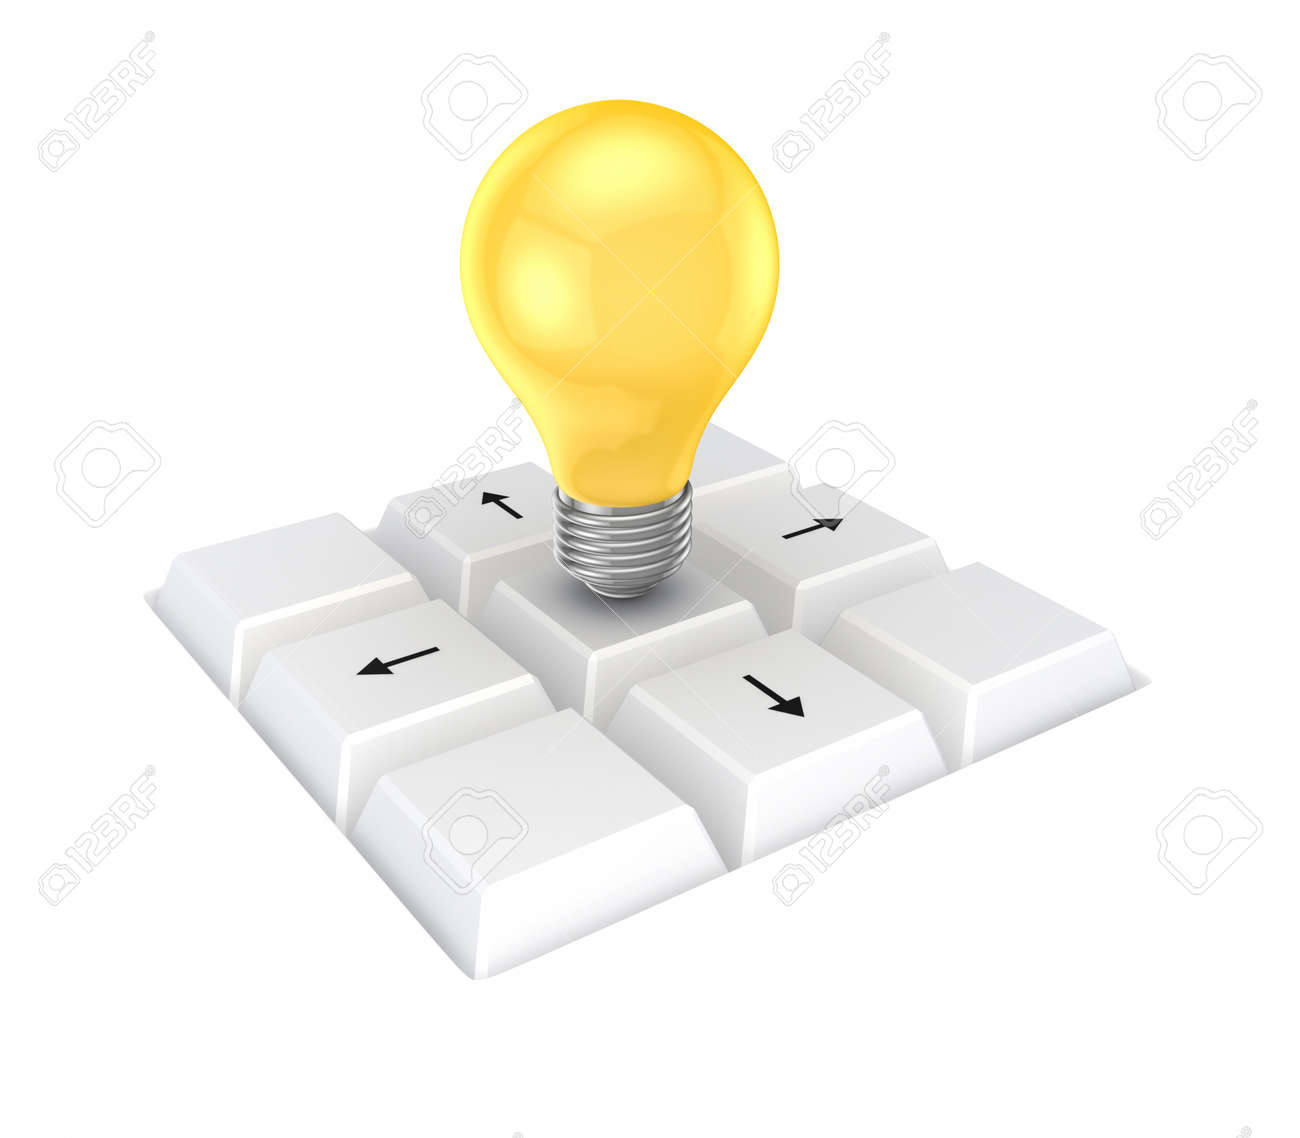 Lamp on a keyboard Stock Photo - 15667676